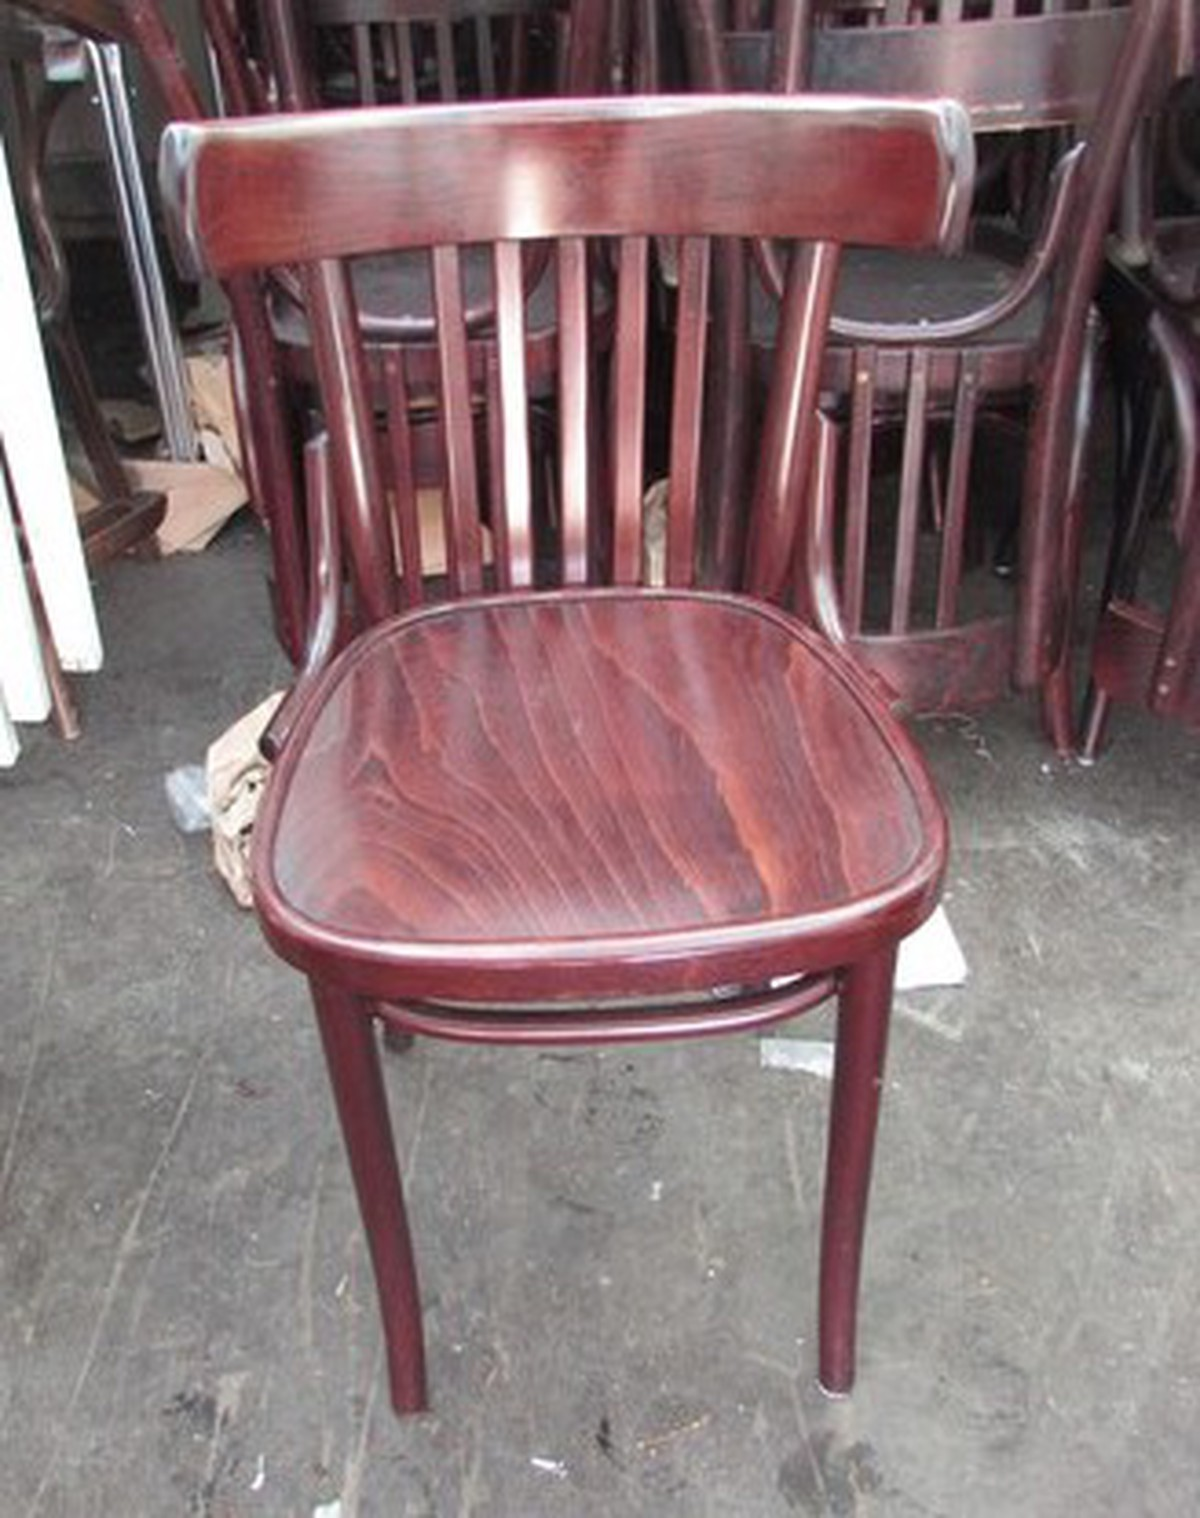 Secondhand chairs and tables restaurant pub